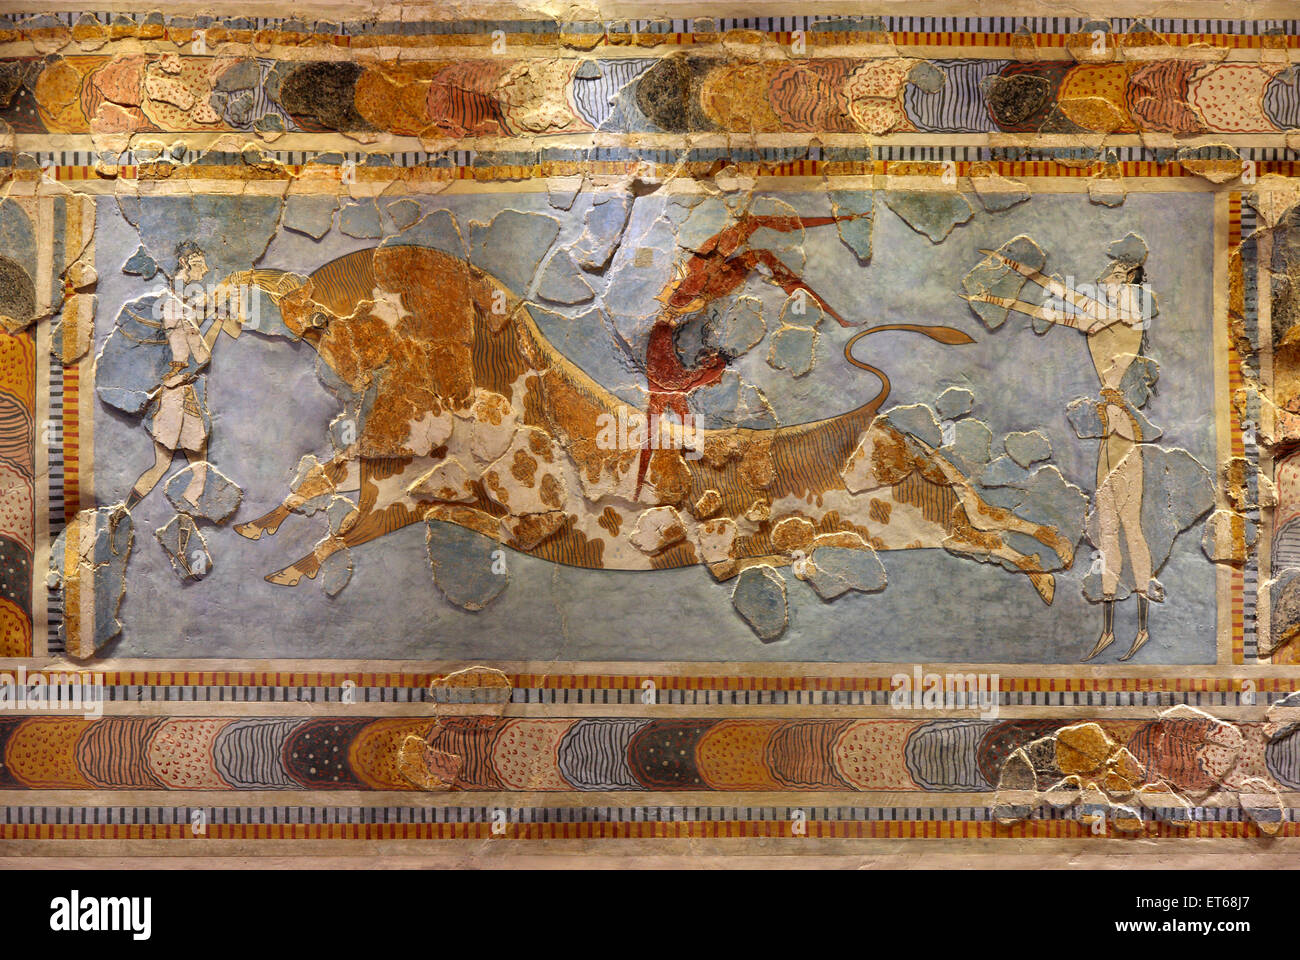 palace at knossos grete and bull leaping Minoan bull leaping fresco ( 1600  / bull leaping fresco from the palace of knossos,  heilbrunn timeline of art history @ metropolitan museum of art.